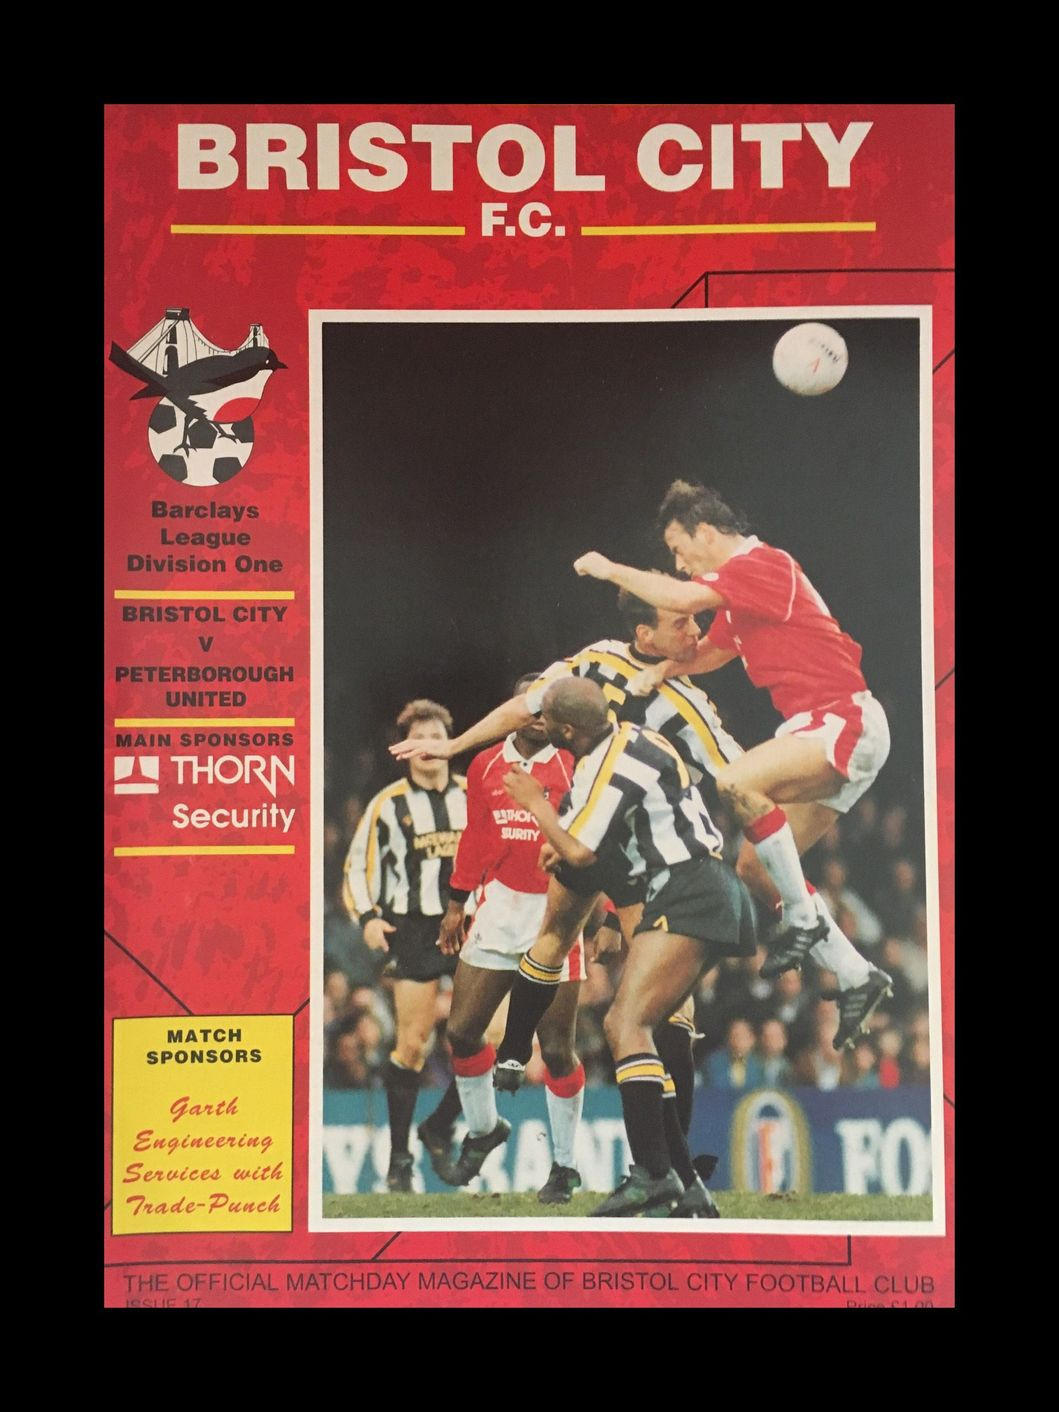 Bristol City v Peterborough United 19-12-1992 Programme